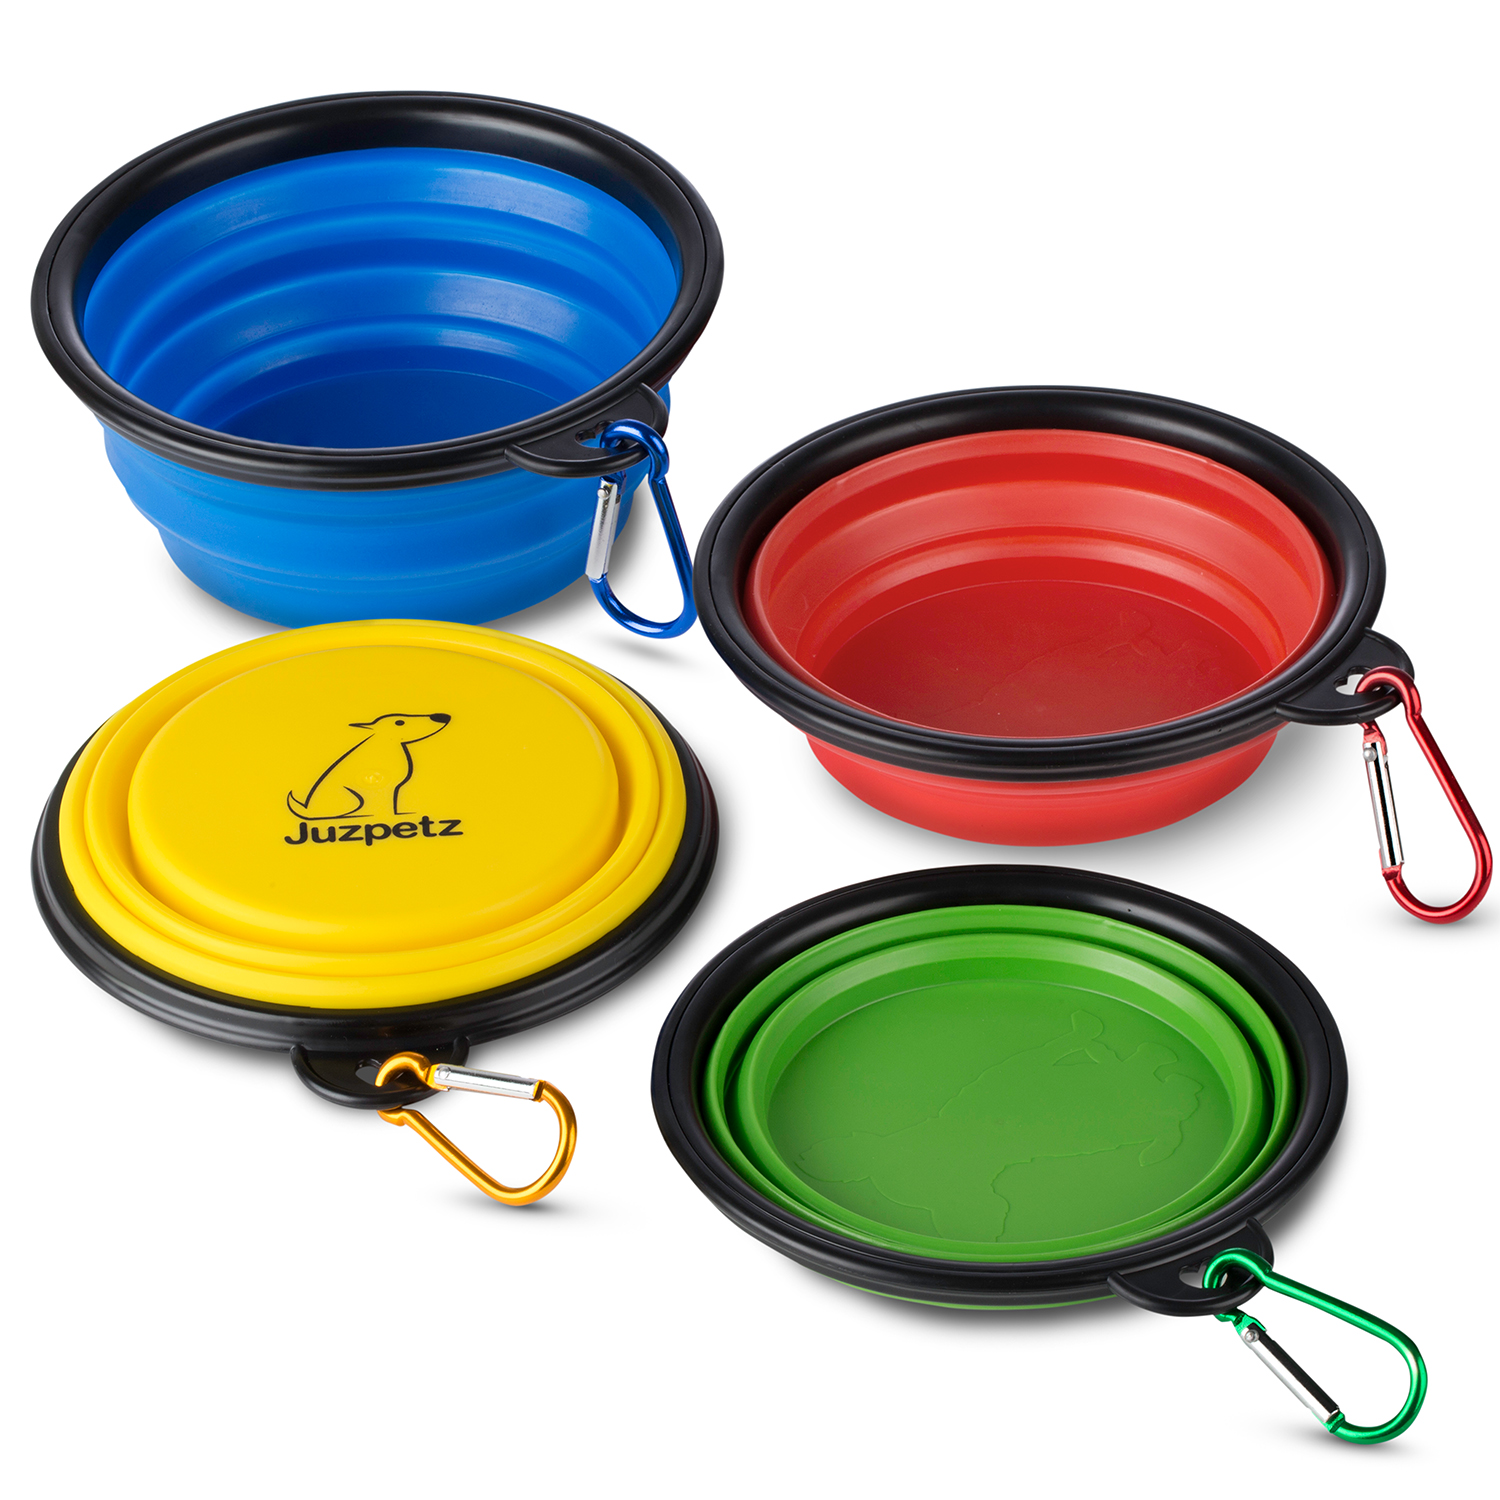 JuzPetz Collapsible Pet Bowl 4 Pack, Silicone Travel Bowl for Dog Cat, Foldable & Expandable - Red/Blue/Yellow/Green